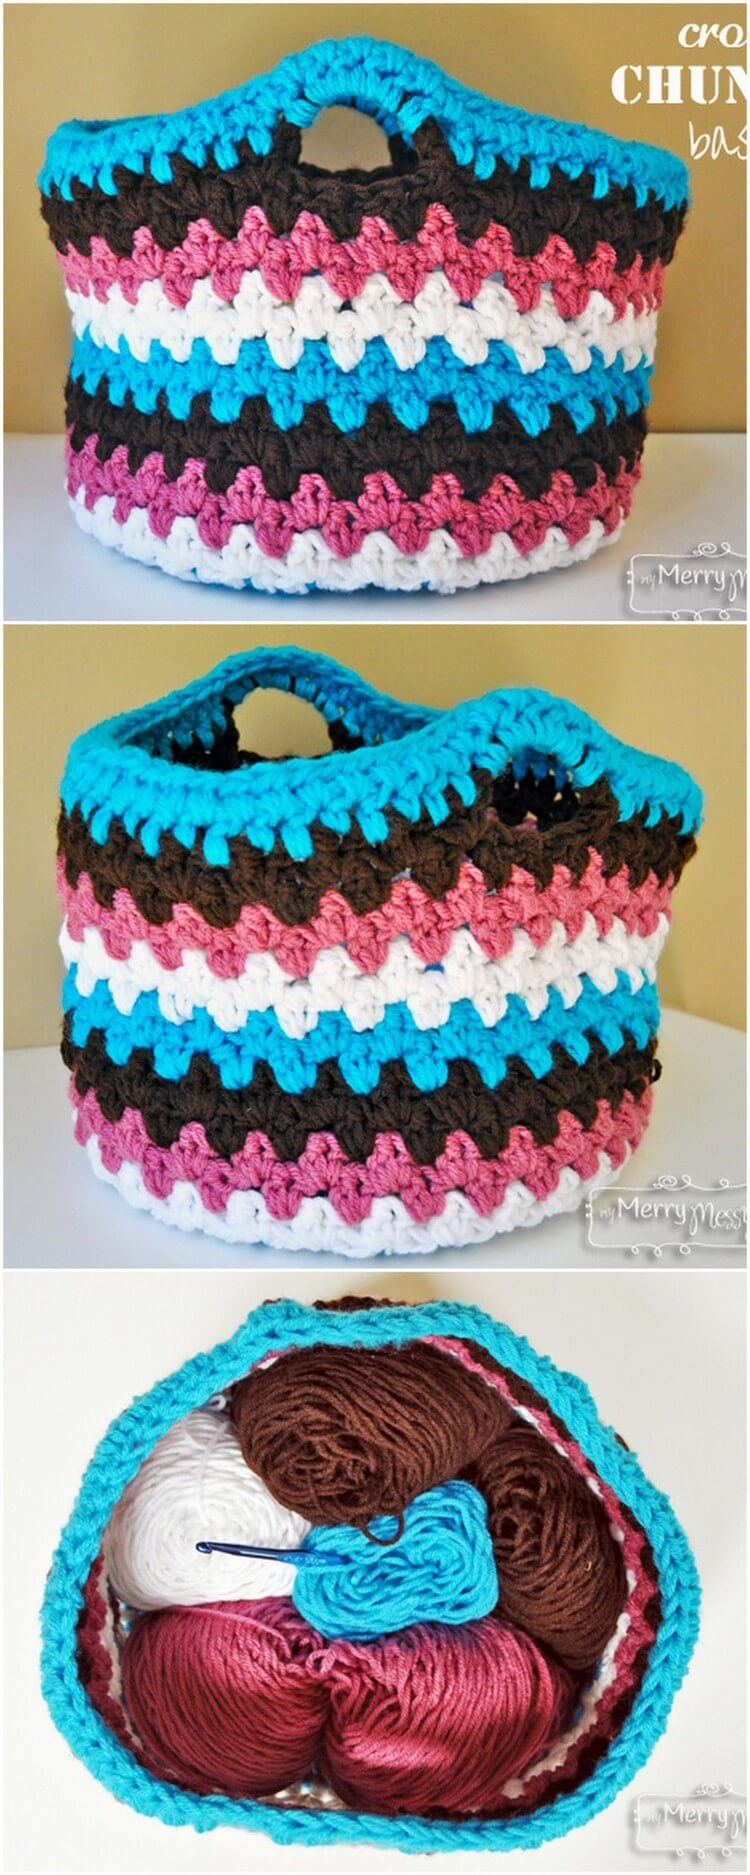 Crochet Basket Pattern (4)